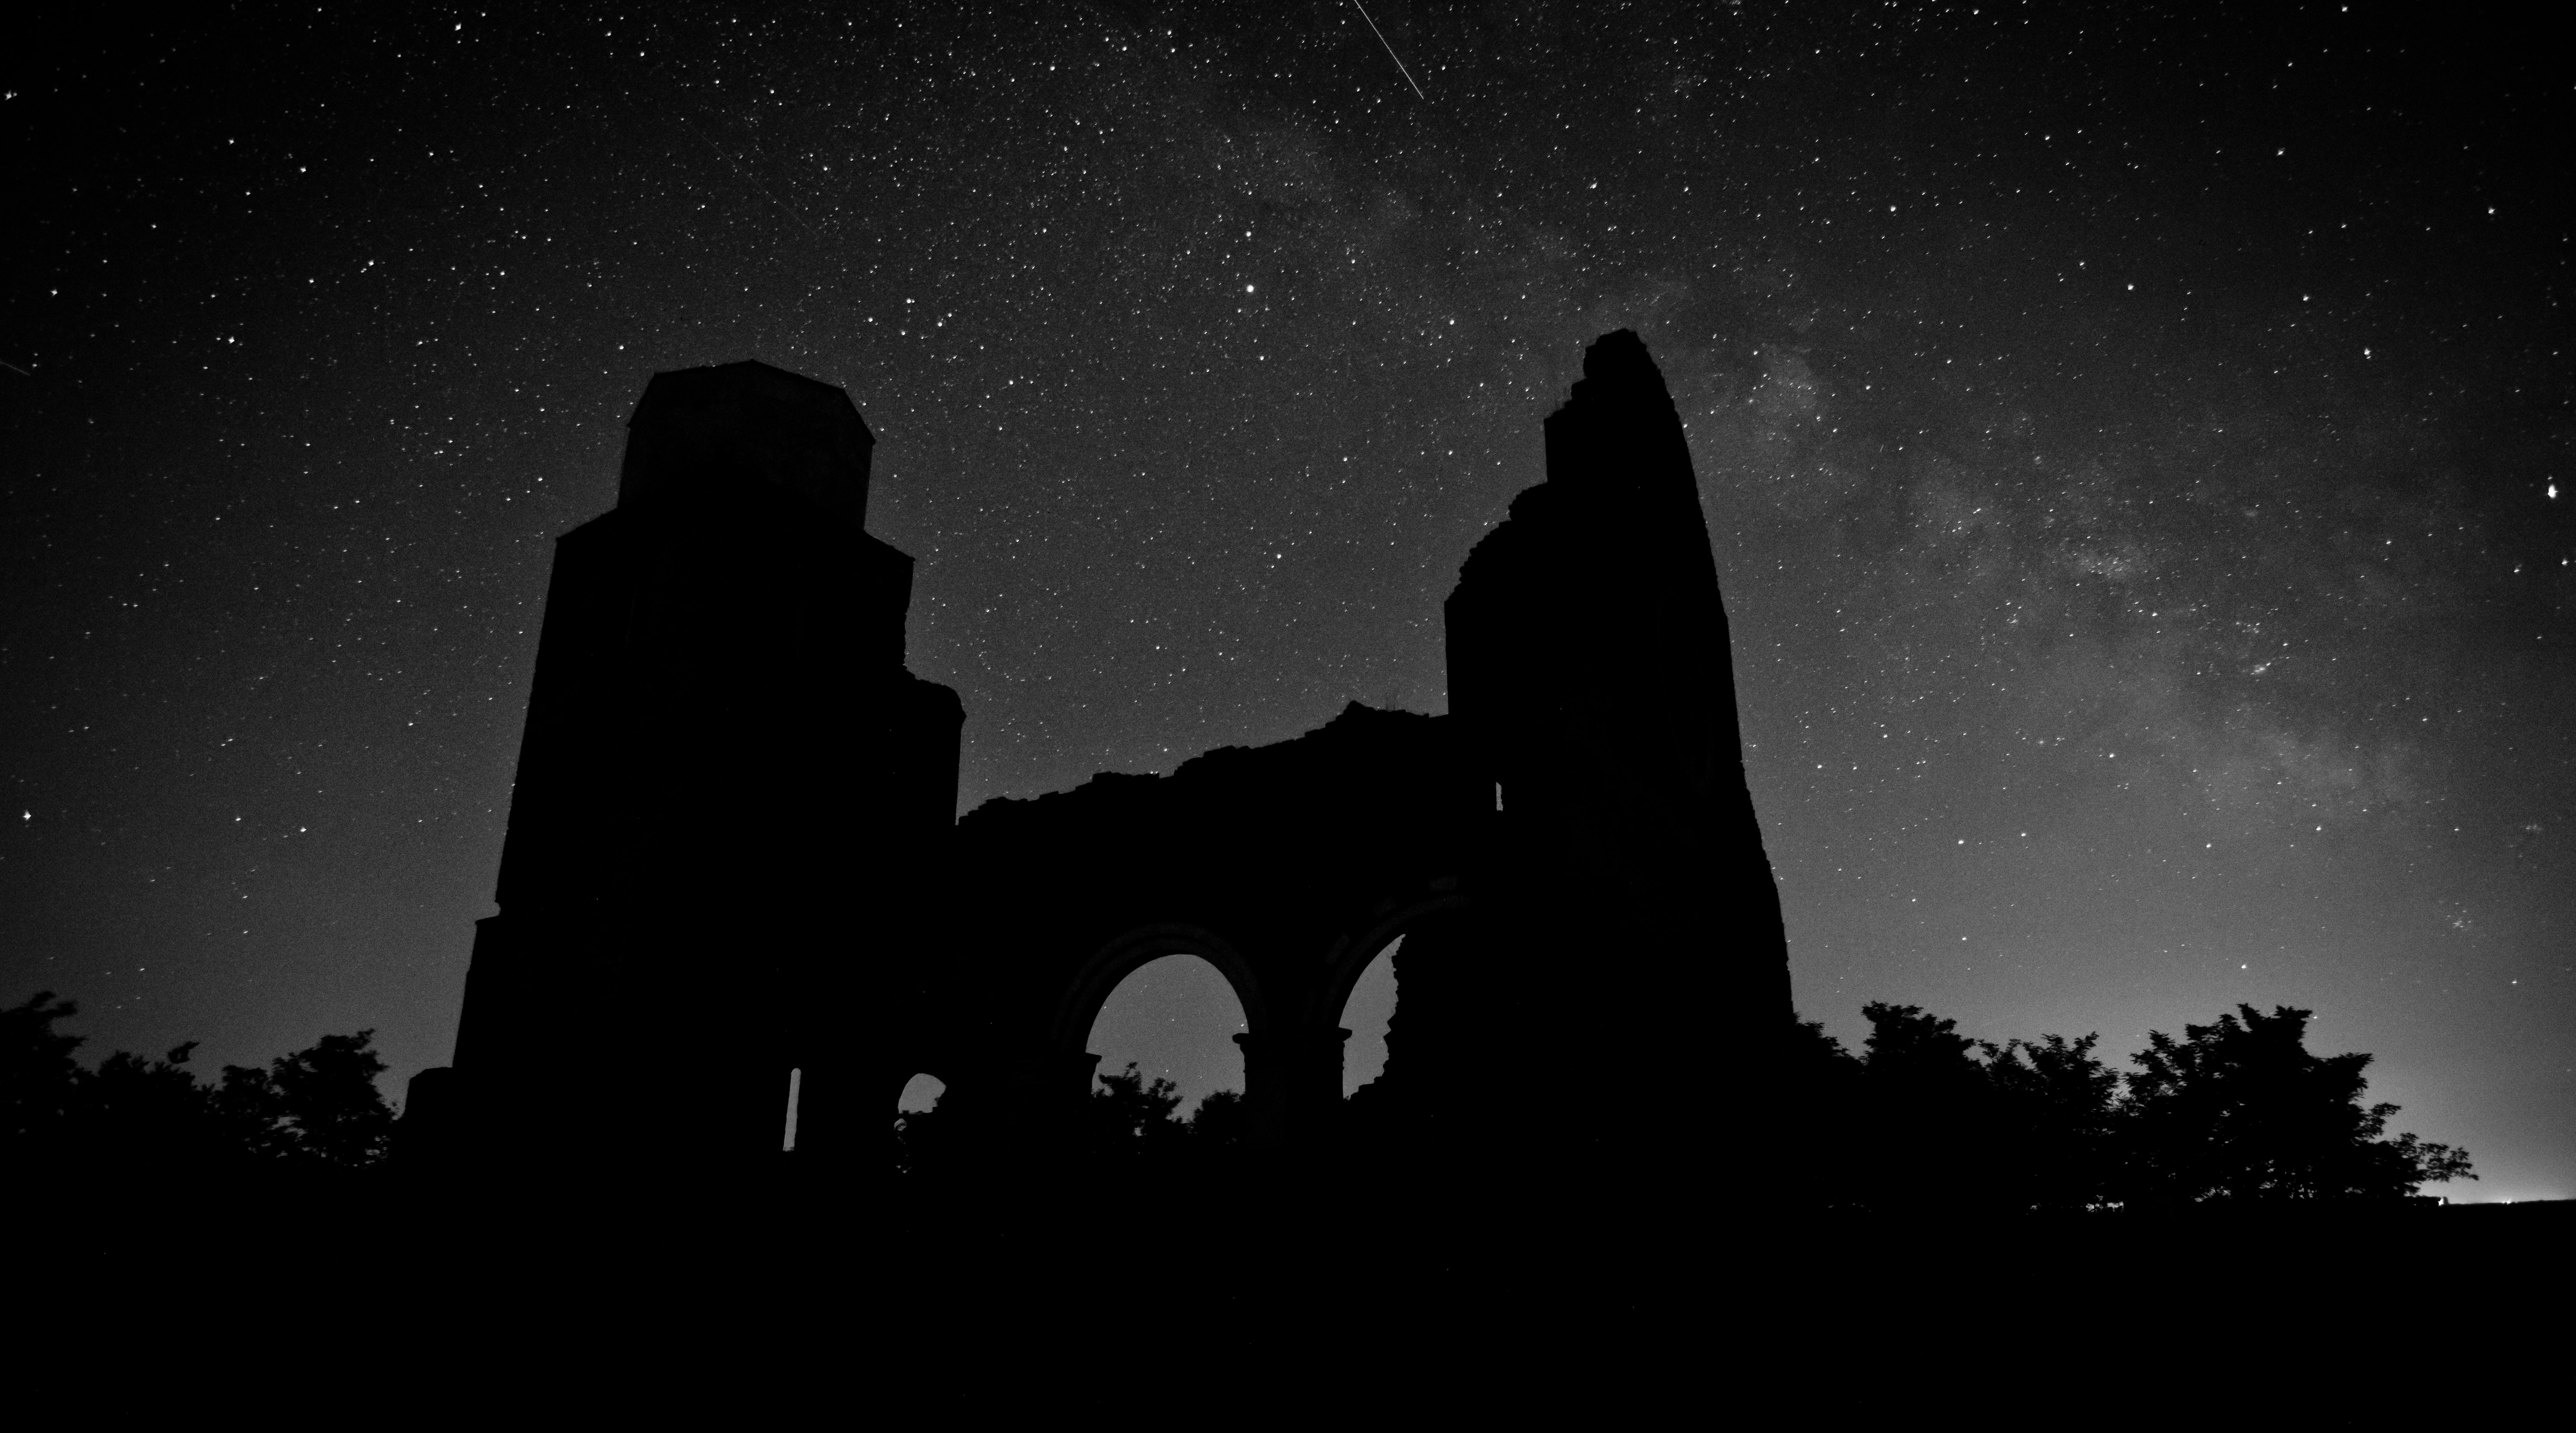 silhouette of ruins at nighttime